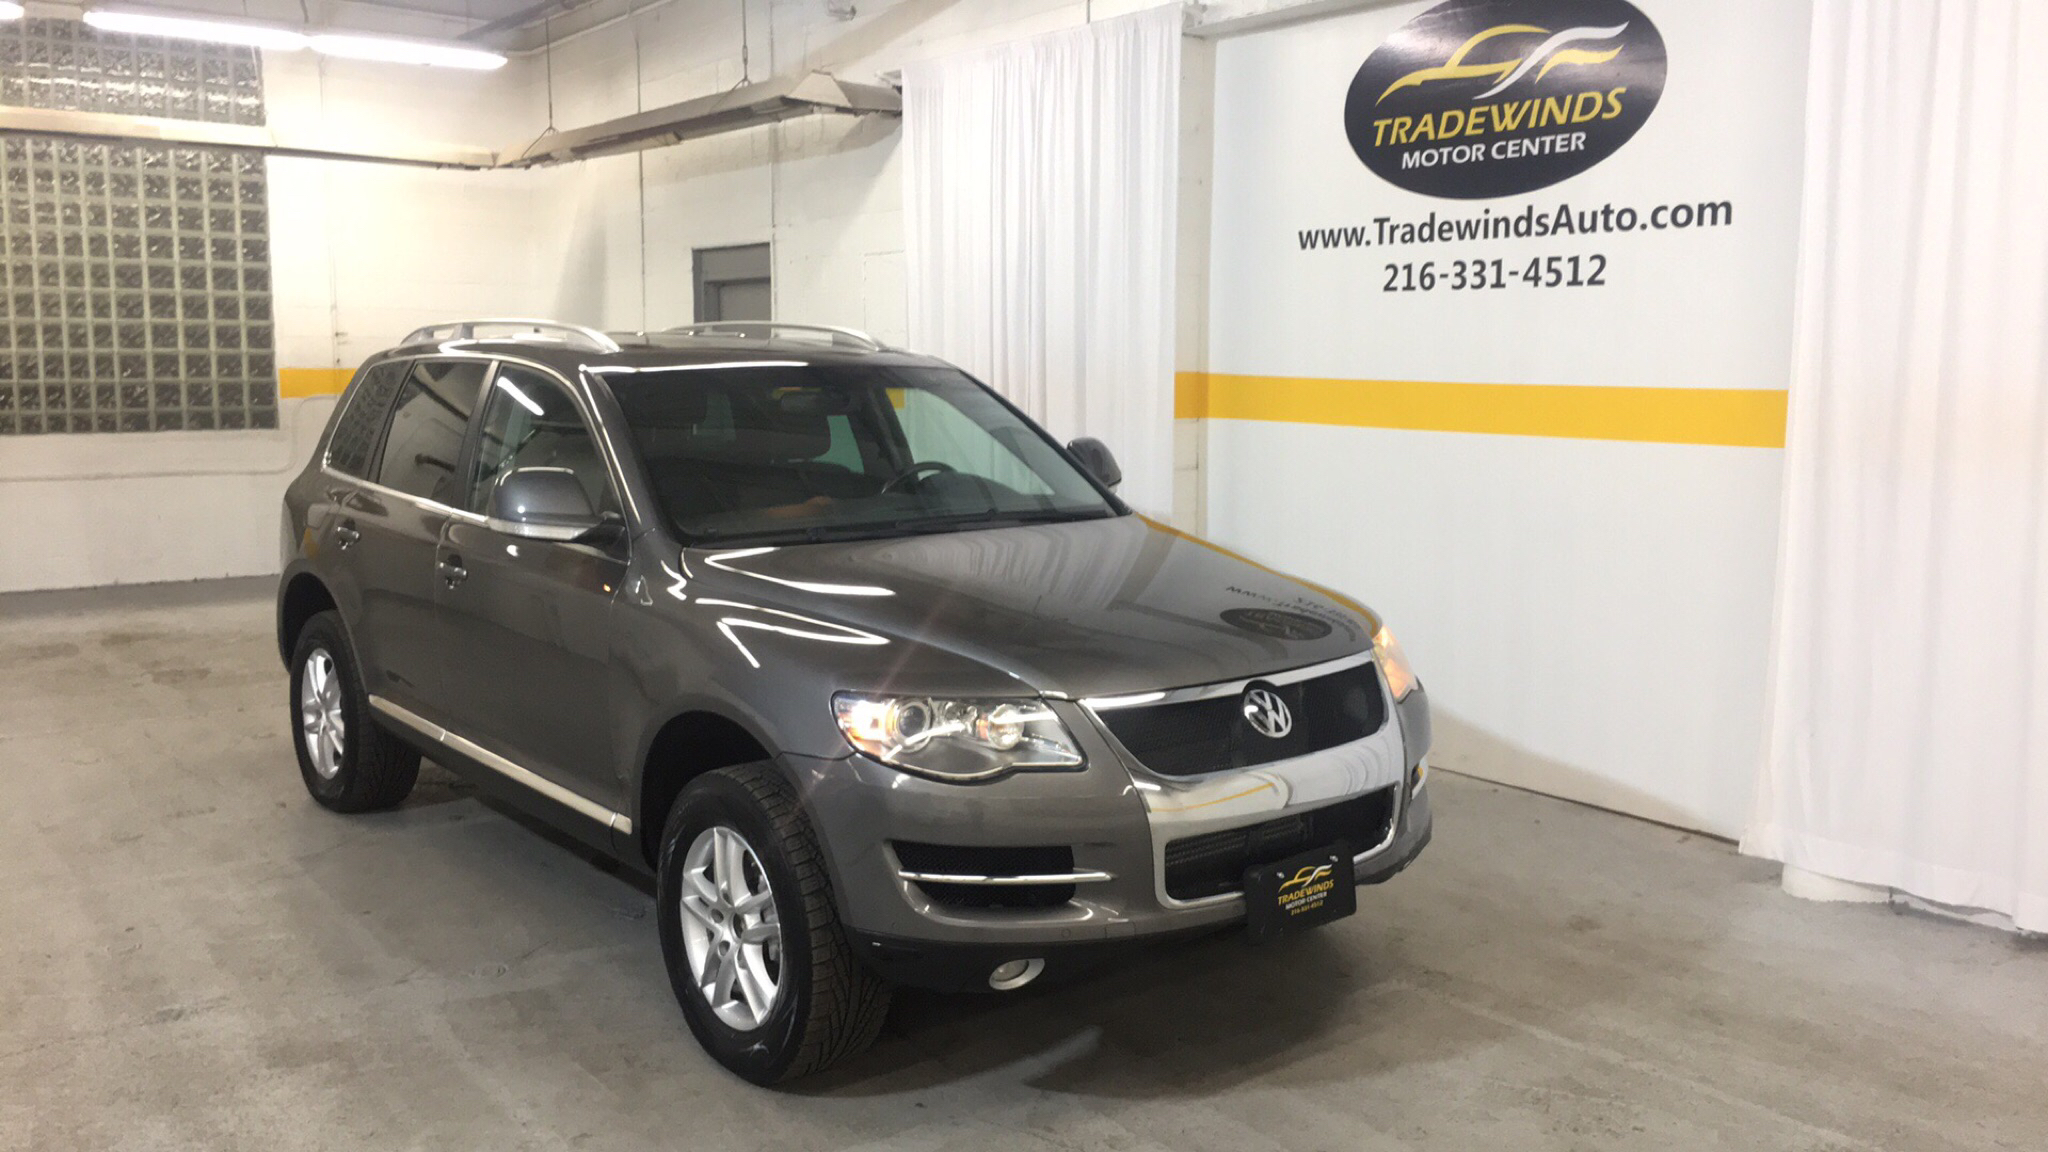 2008 VOLKSWAGEN TOUAREG 2 V6 for sale at Tradewinds Motor Center